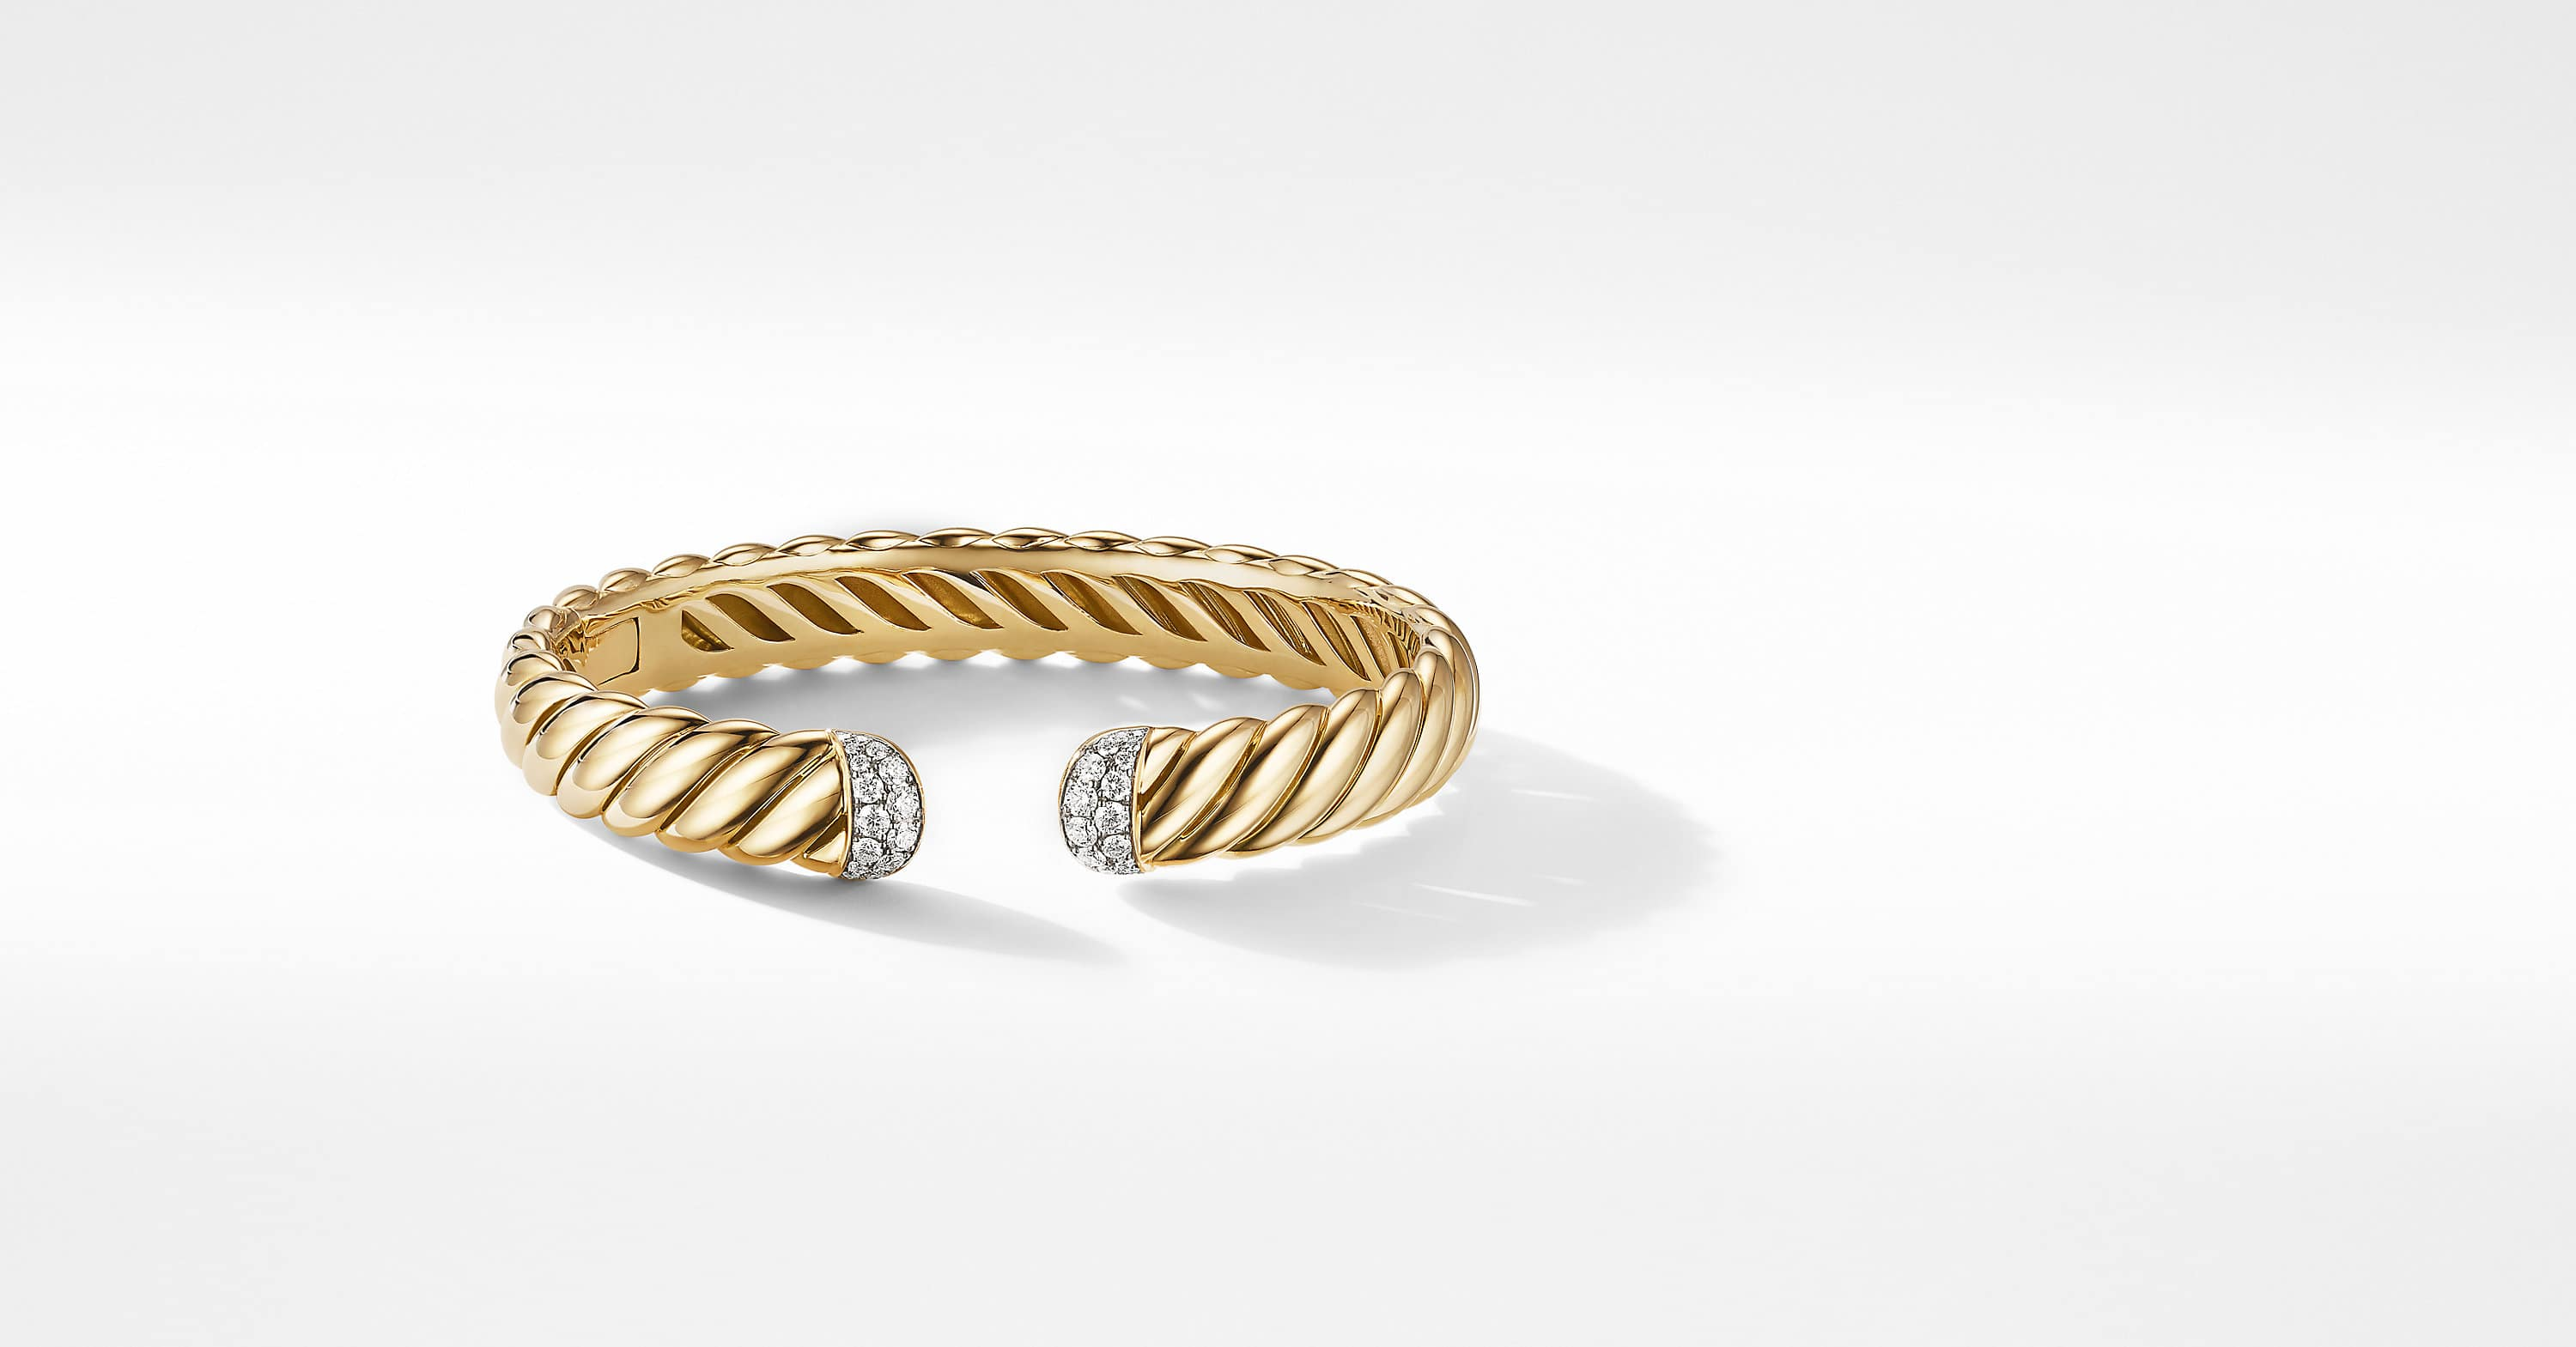 Sculpted Cable Cuff Bracelet in 18K Yellow Gold with Diamonds, 10mm